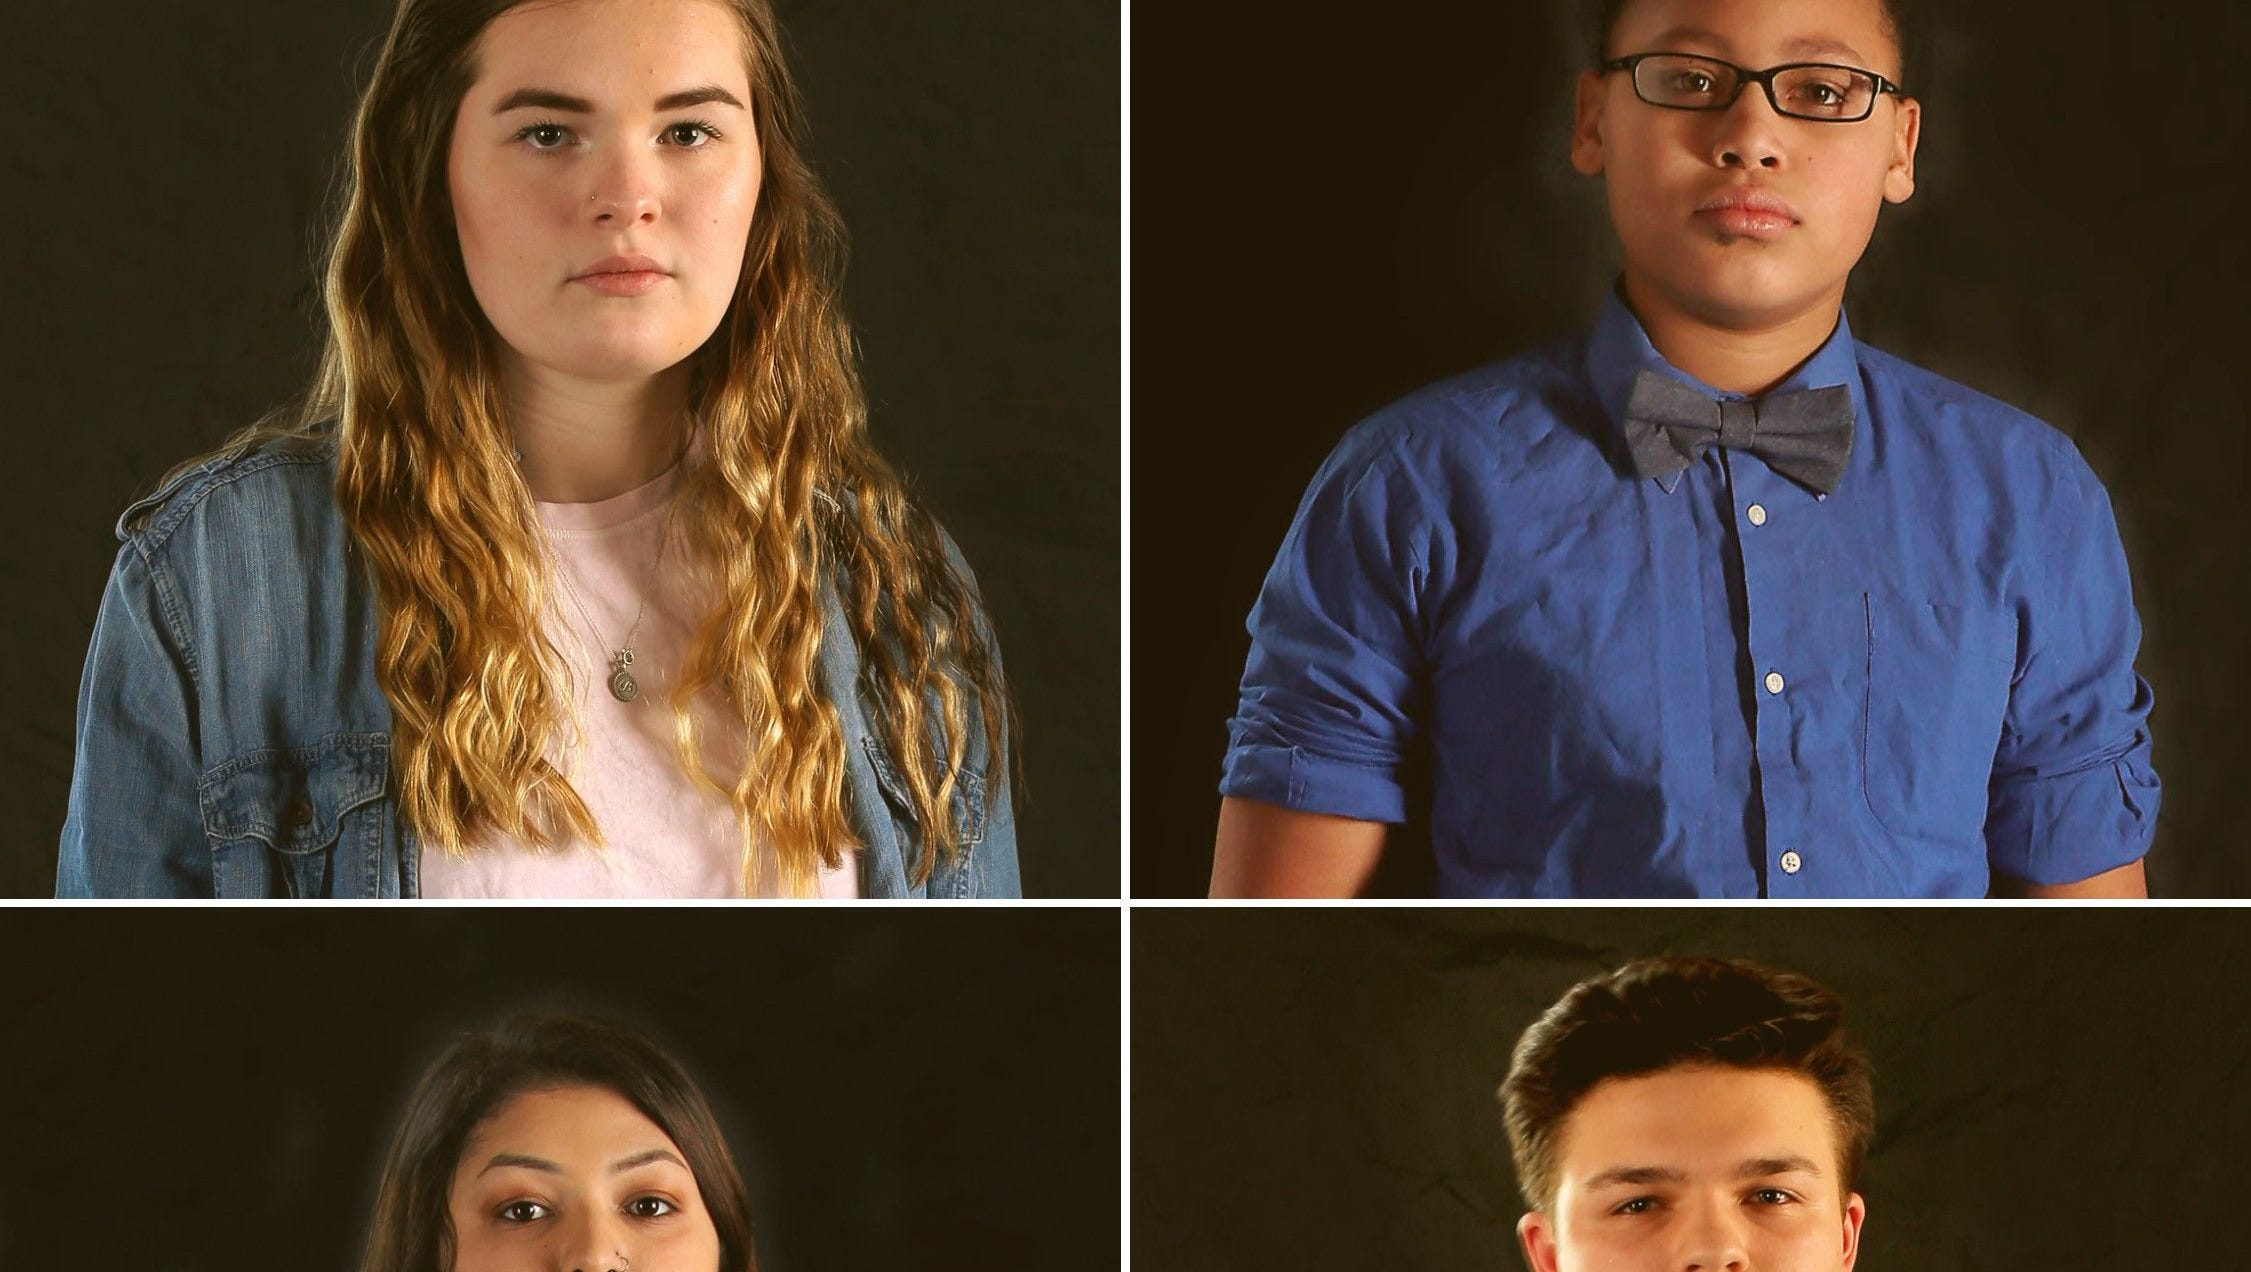 Documenting mental health challenges: Wisconsin teens will share their mental health challenges in new Milwaukee PBS documentary